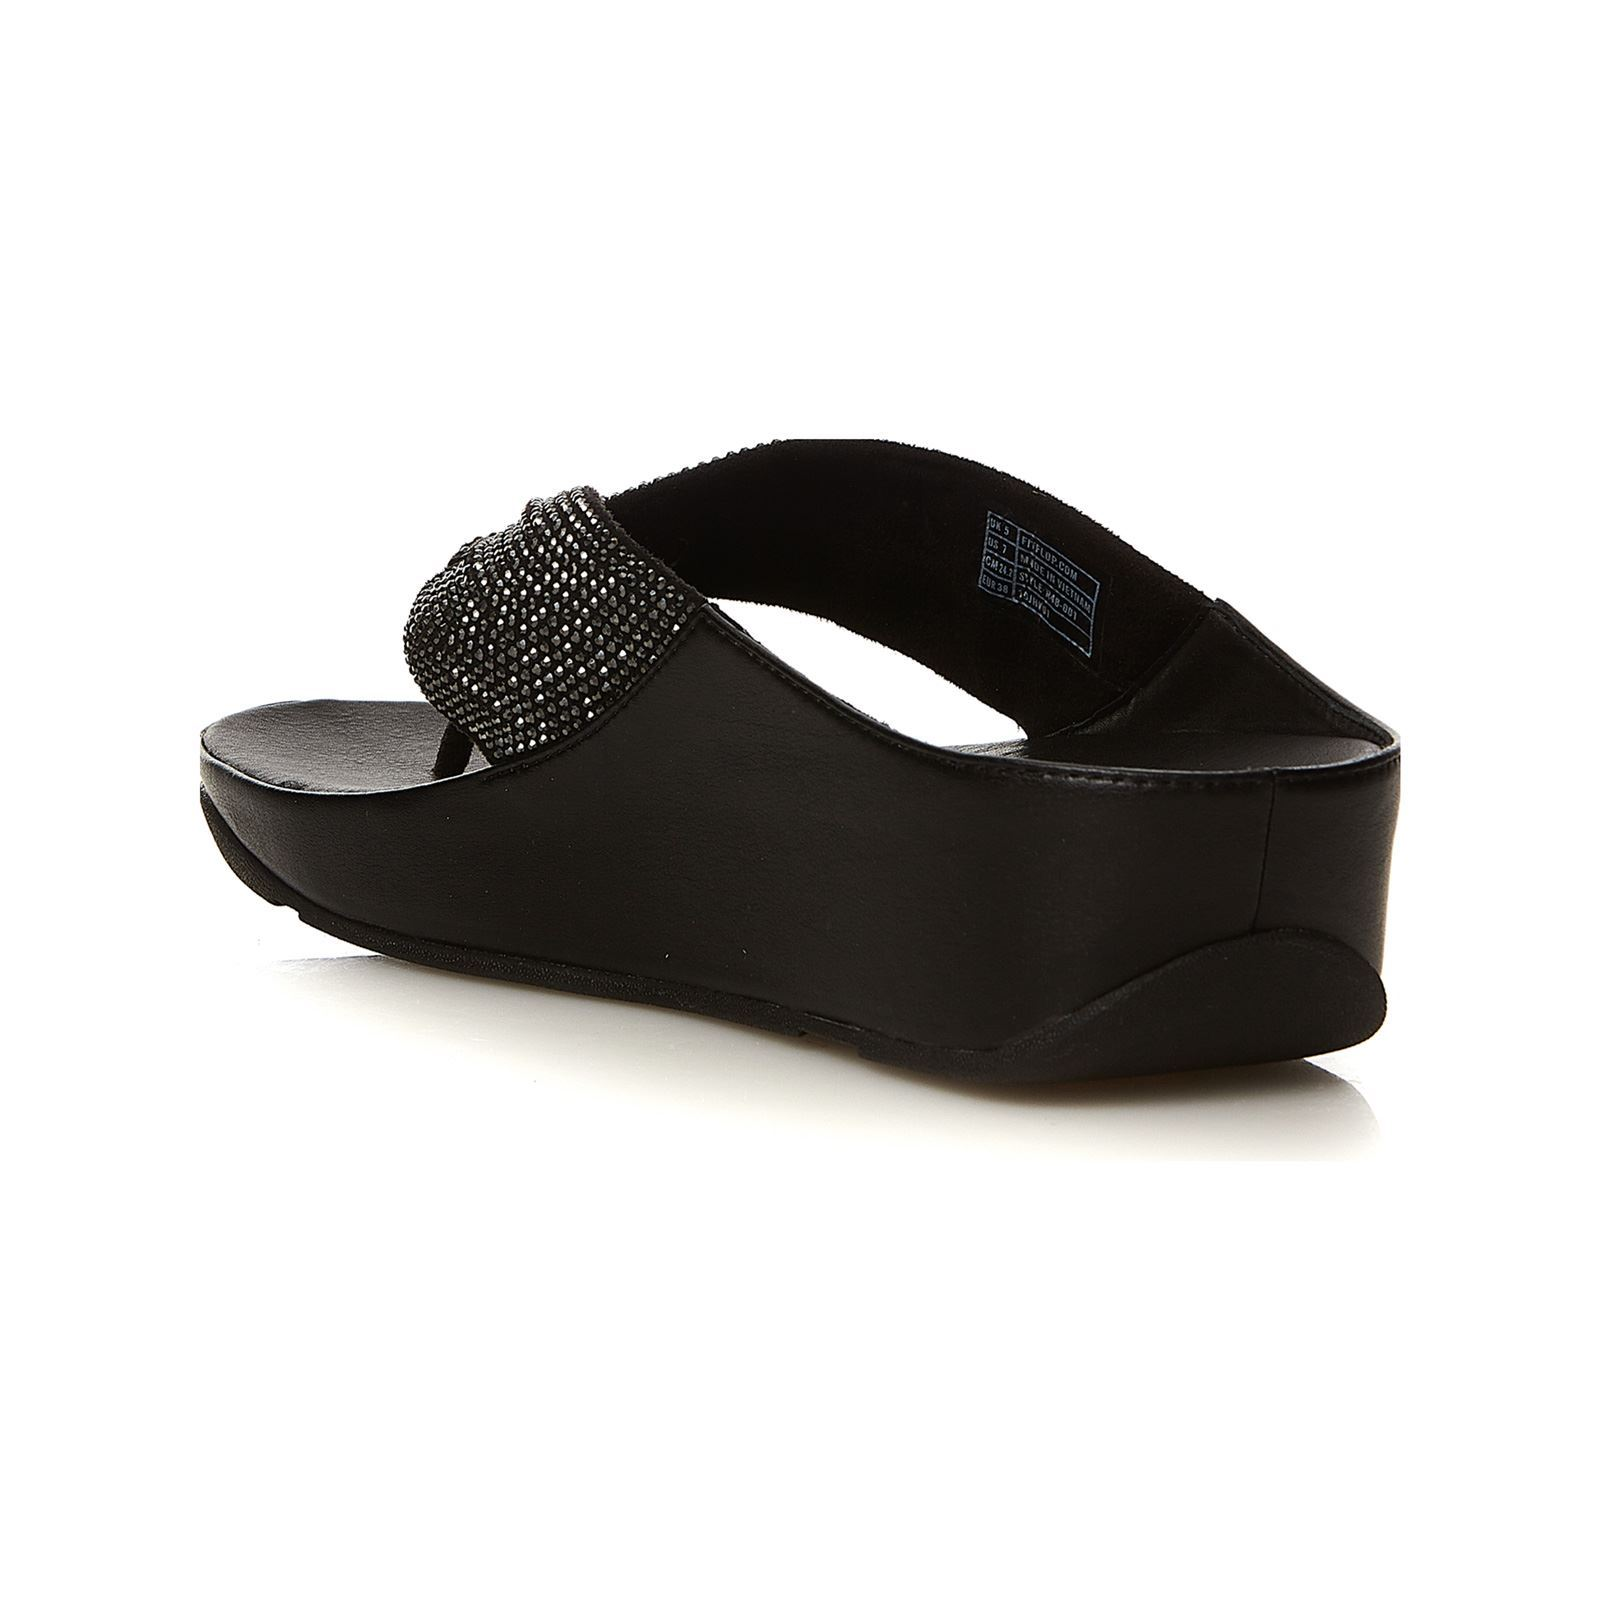 Fitflop Twiss NeroBrandalley Fitflop Crystal Twiss Fitflop Crystal Twiss NeroBrandalley Sandali Sandali ULSVqMGpz